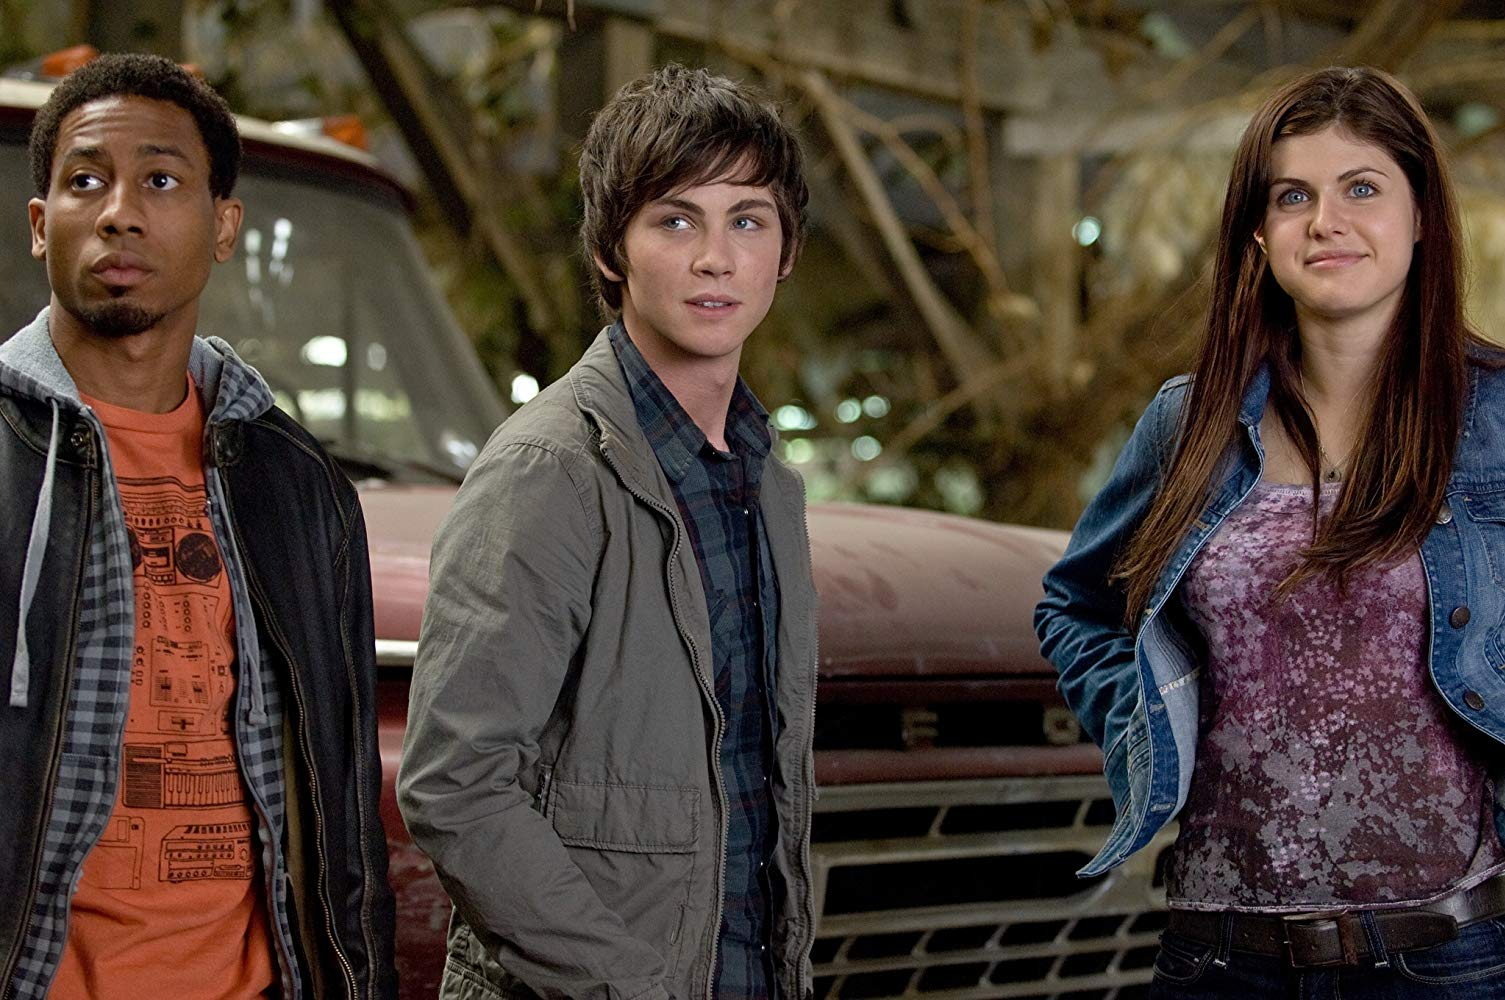 Grover (Brandon T. Jackson), Percy Jackson (Logan Lerman) and Annabeth (Alexandra Daddario) in Percy Jackson & The Olympians: The Lightning Thief (2010)